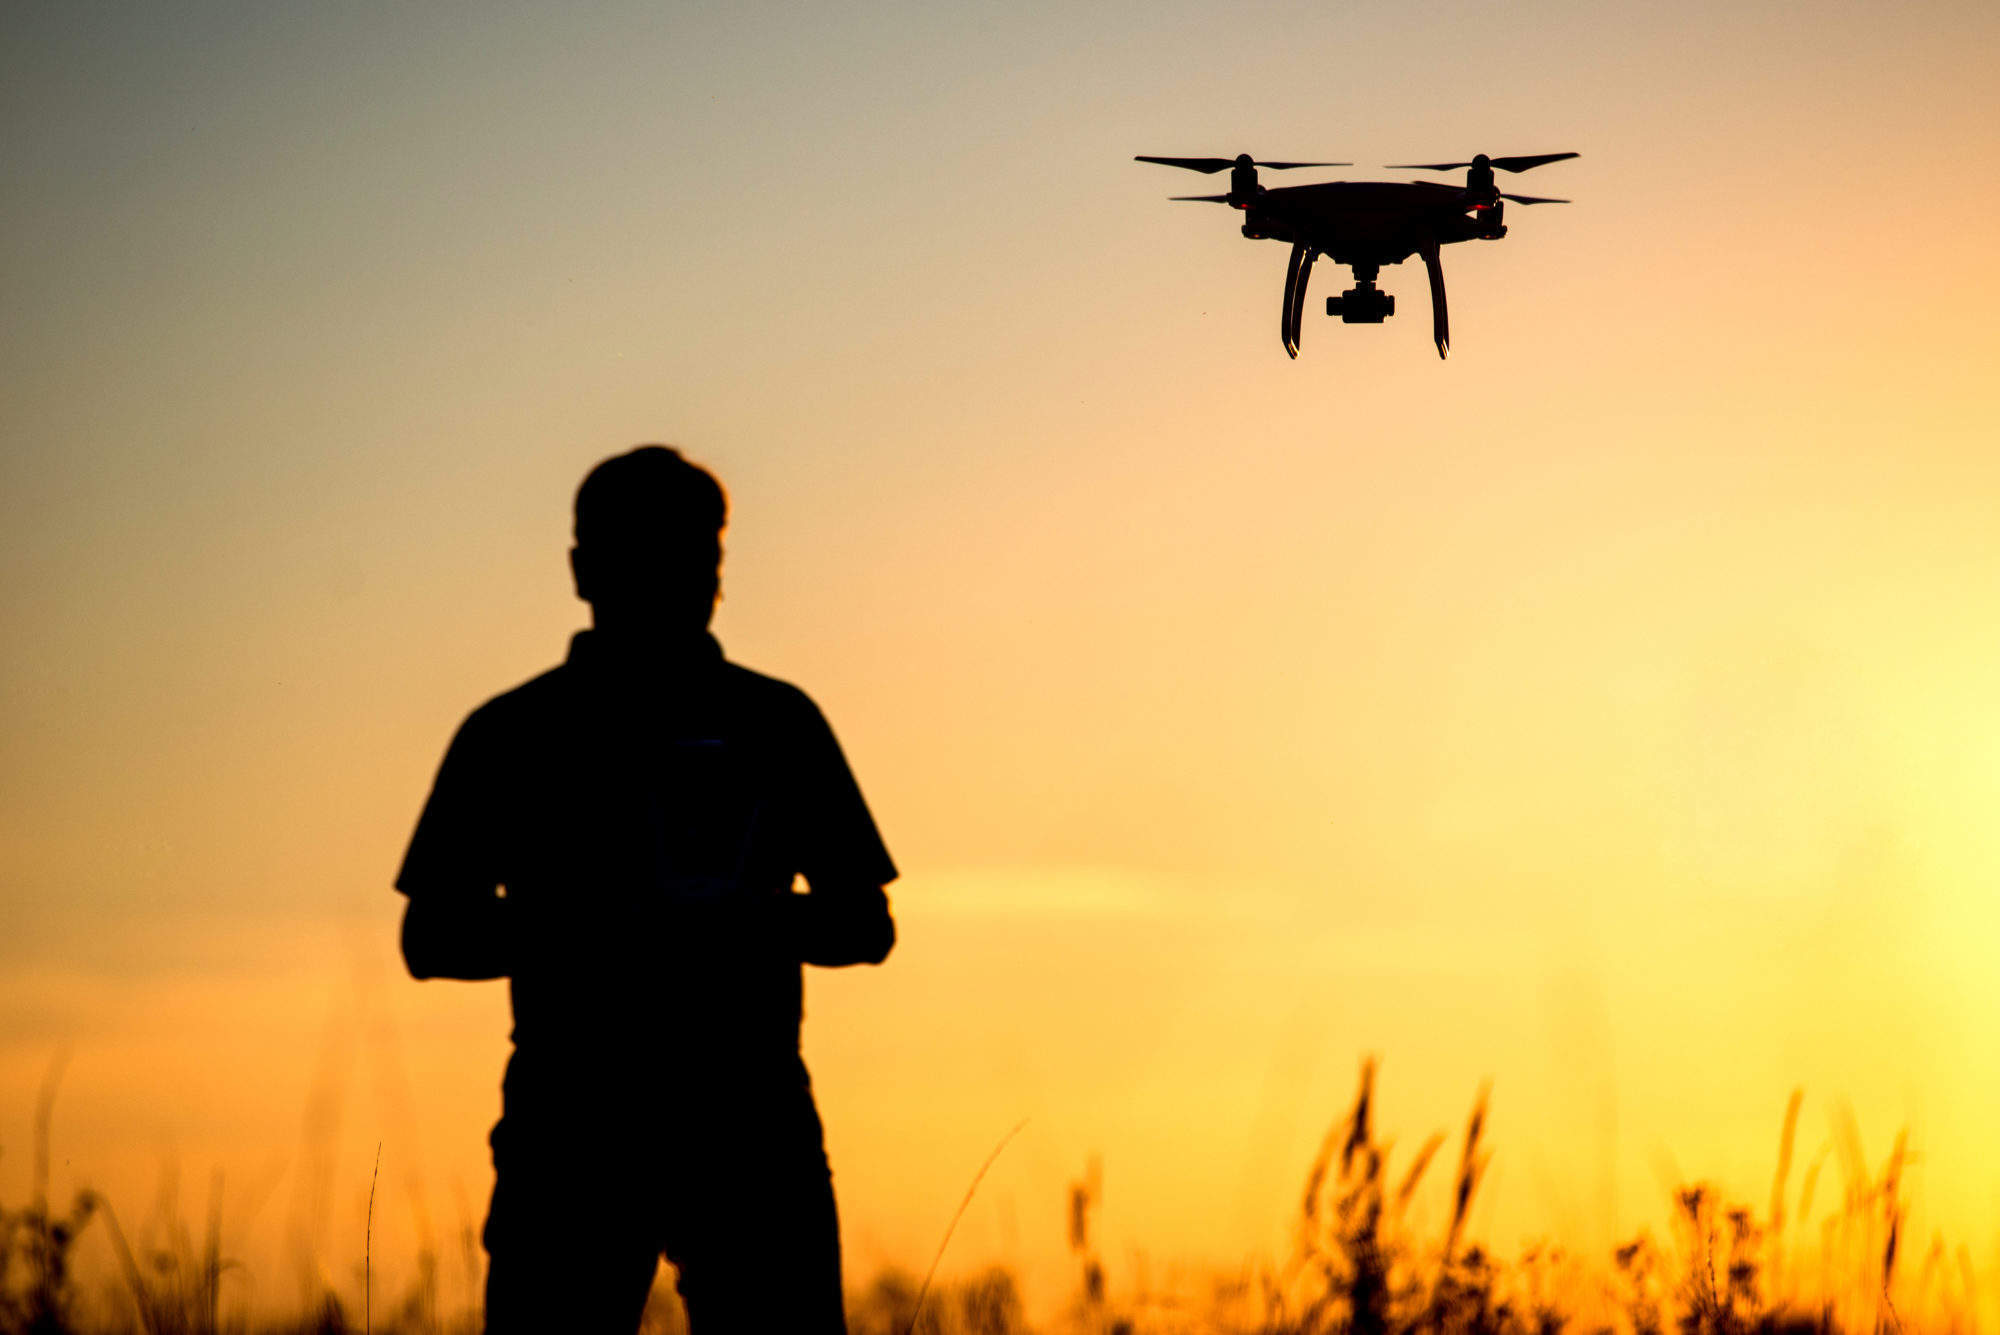 UK drone laws come into force: here's what you need to know